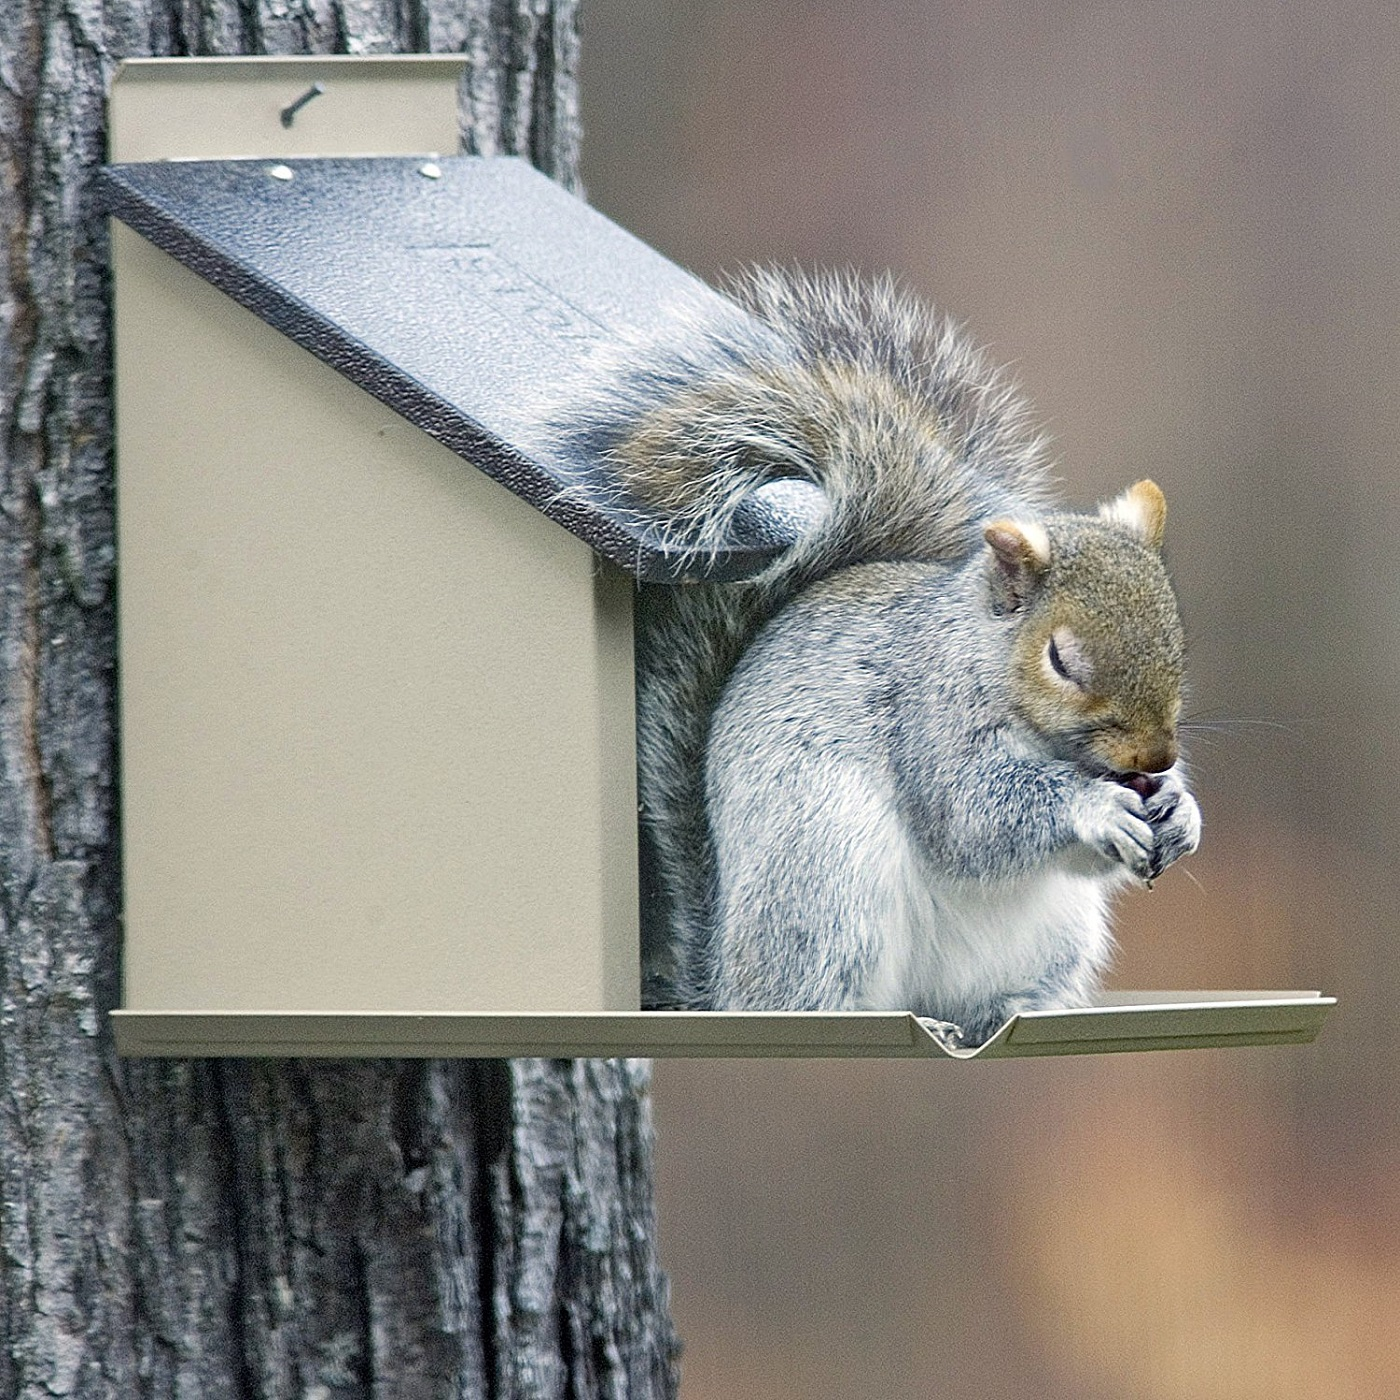 Stokes Select Lunch Box Squirrel Feeder